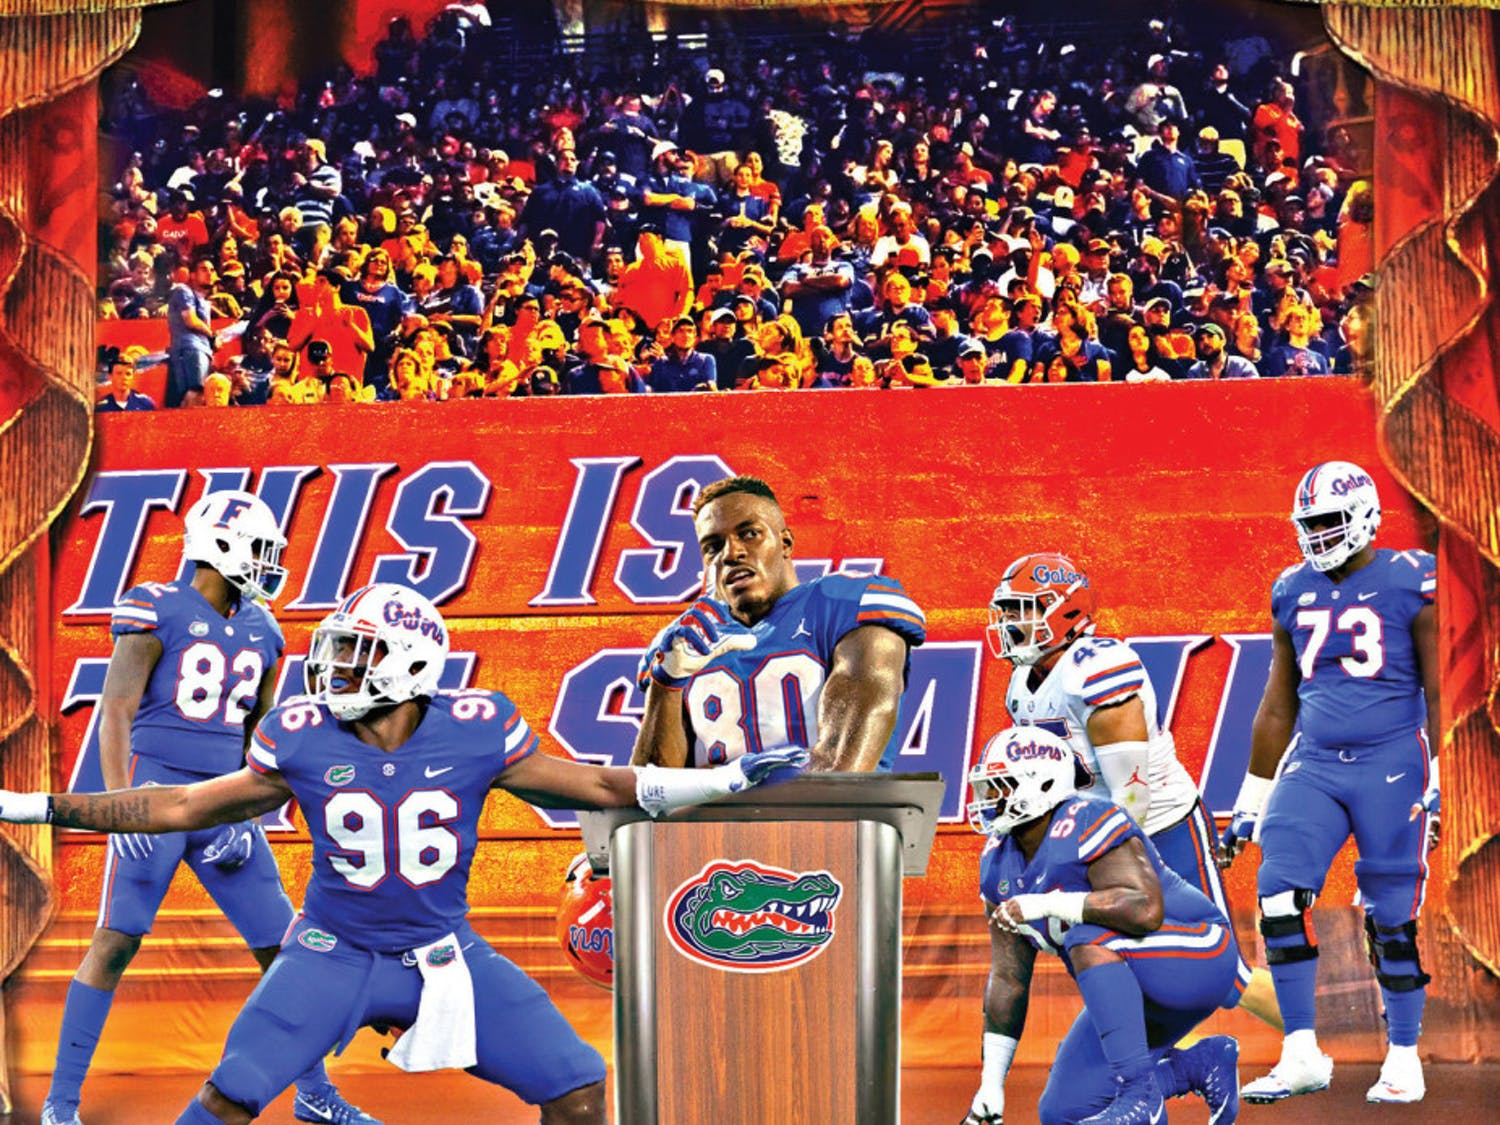 Florida football will host its Senior Day when it takes on Idaho at noon on Saturday.